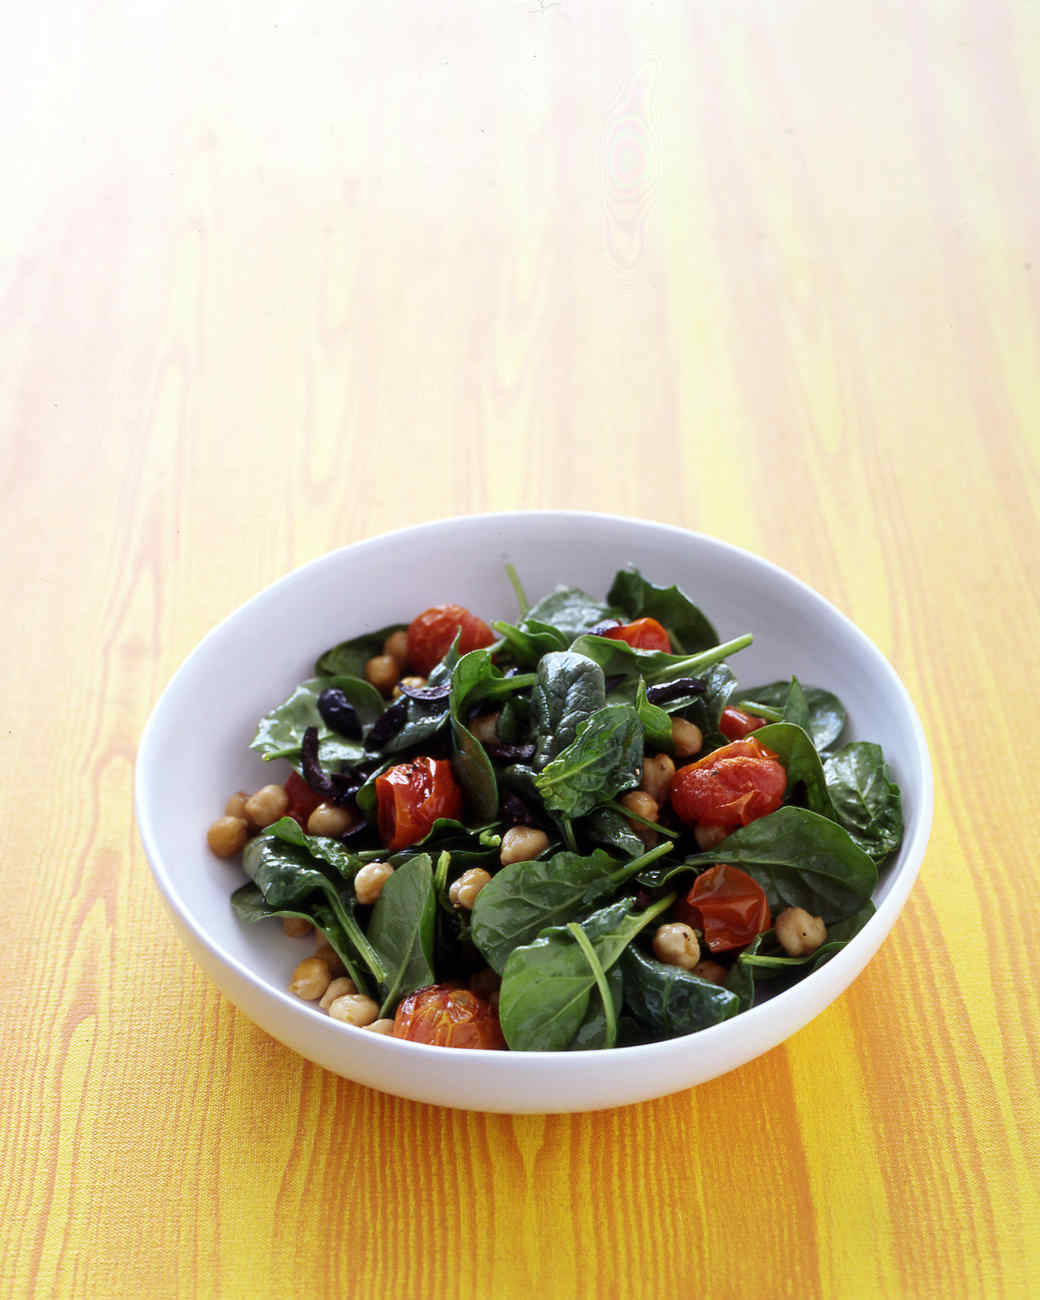 Wilted Spinach Salad with Chickpeas